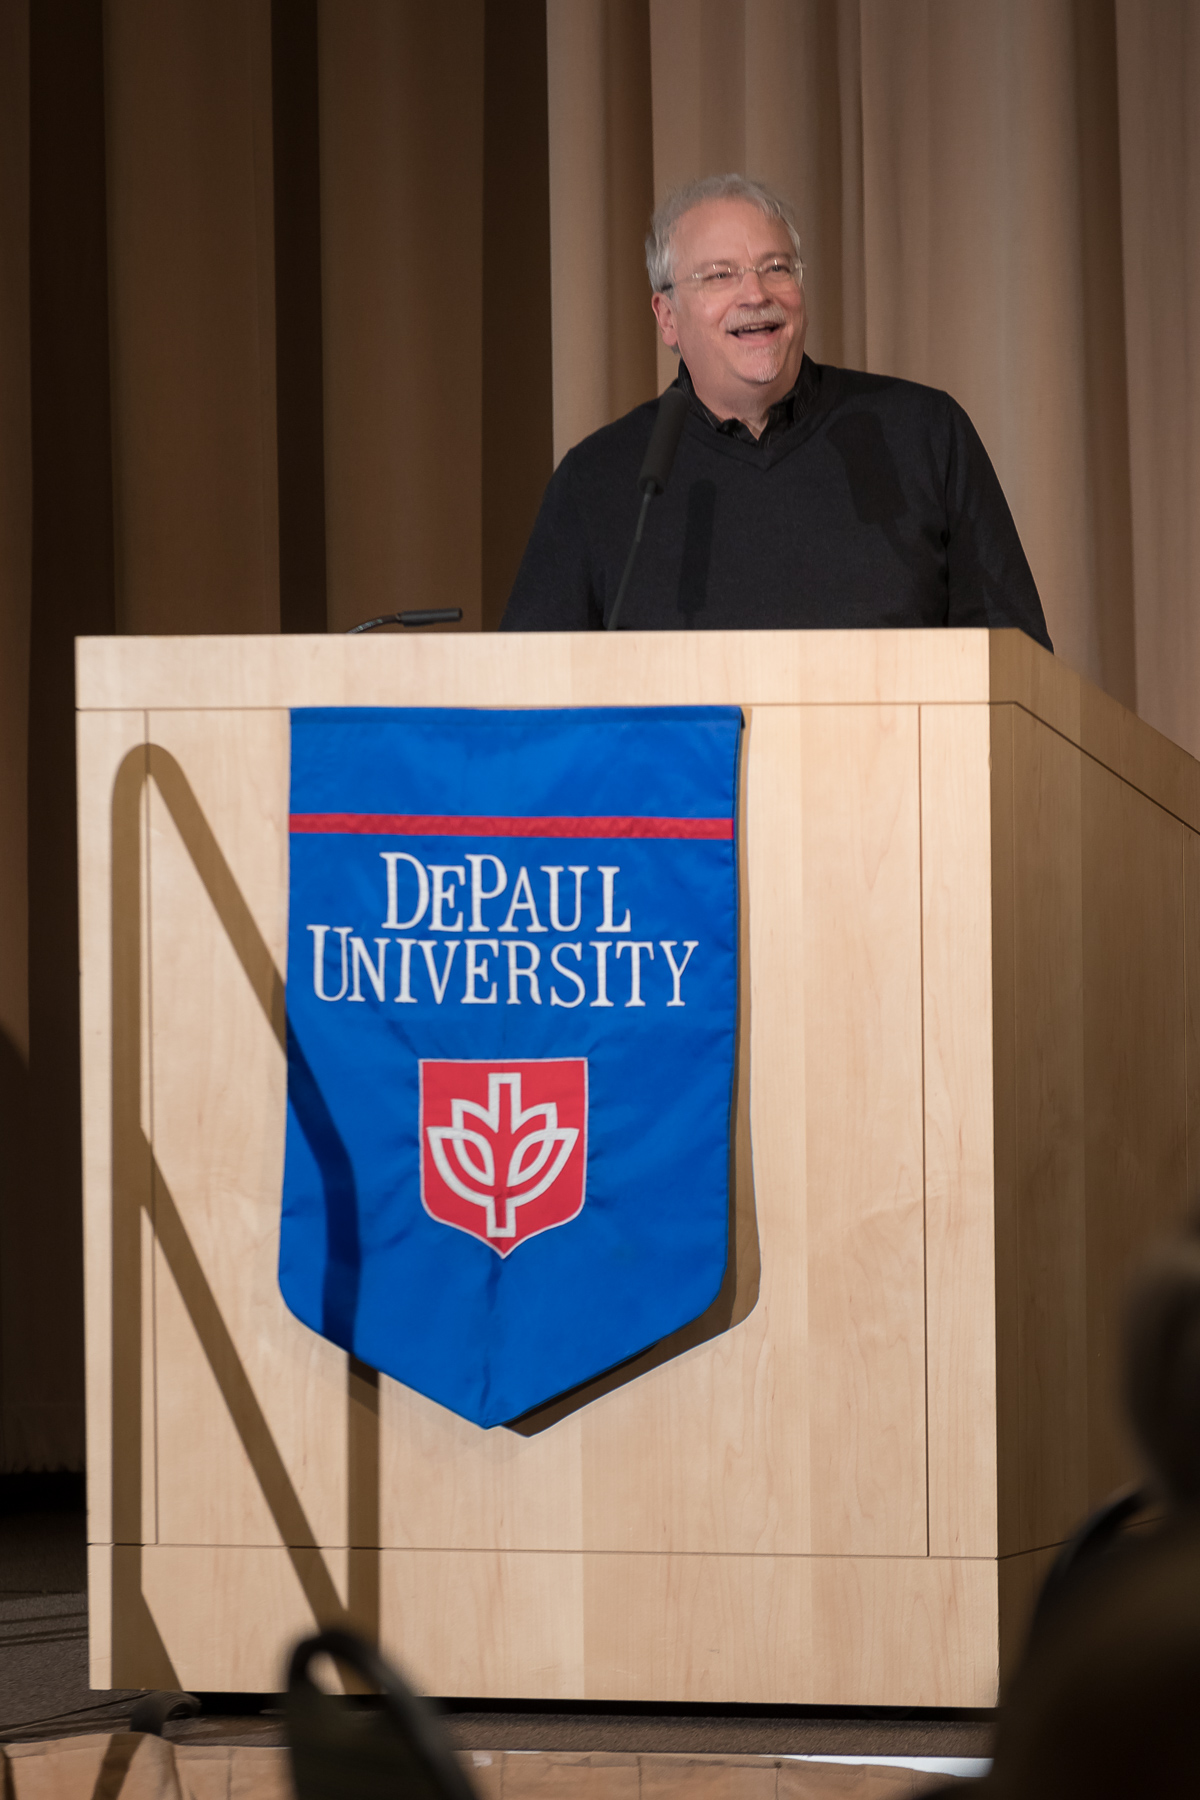 Peter Vandenberg, department chair in Writing, Rhetoric and Discourse, offers his reflections on the past 25 years as DePaul University faculty and staff members are honored for their 25 years of service during a luncheon, Tuesday, Nov. 13, 2018, at the Lincoln Park Student Center. The honorees will have their names added to plaques located on the Loop and Lincoln Park Campuses. (DePaul University/Jeff Carrion)